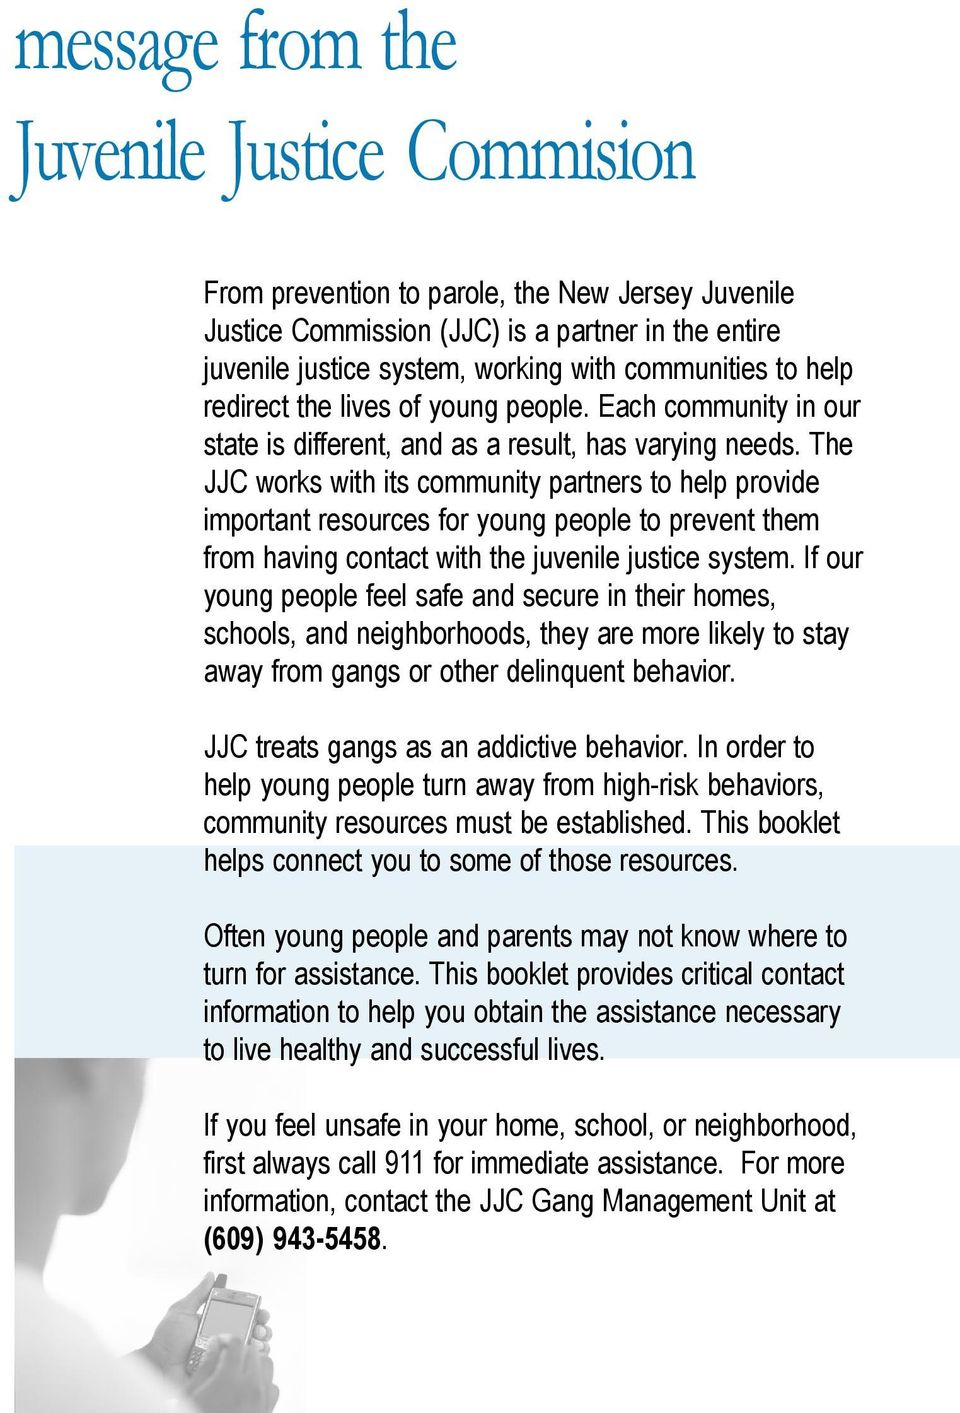 The JJC works with its community partners to help provide important resources for young people to prevent them from having contact with the juvenile justice system.